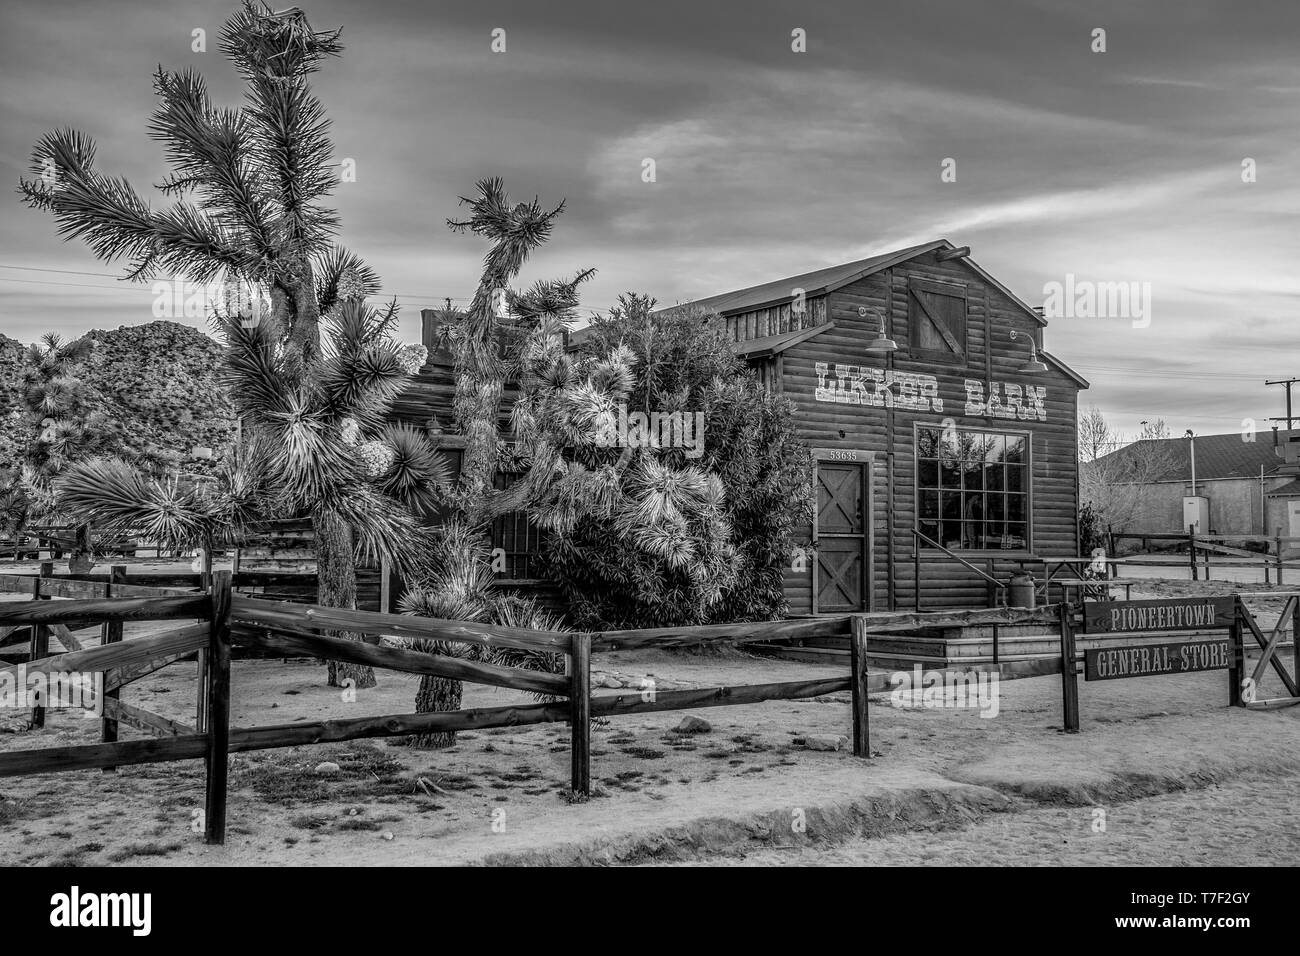 Pioneertown at the Morongo Basin in Calfornia - CALIFORNIA, USA - MARCH 18, 2019 Stock Photo